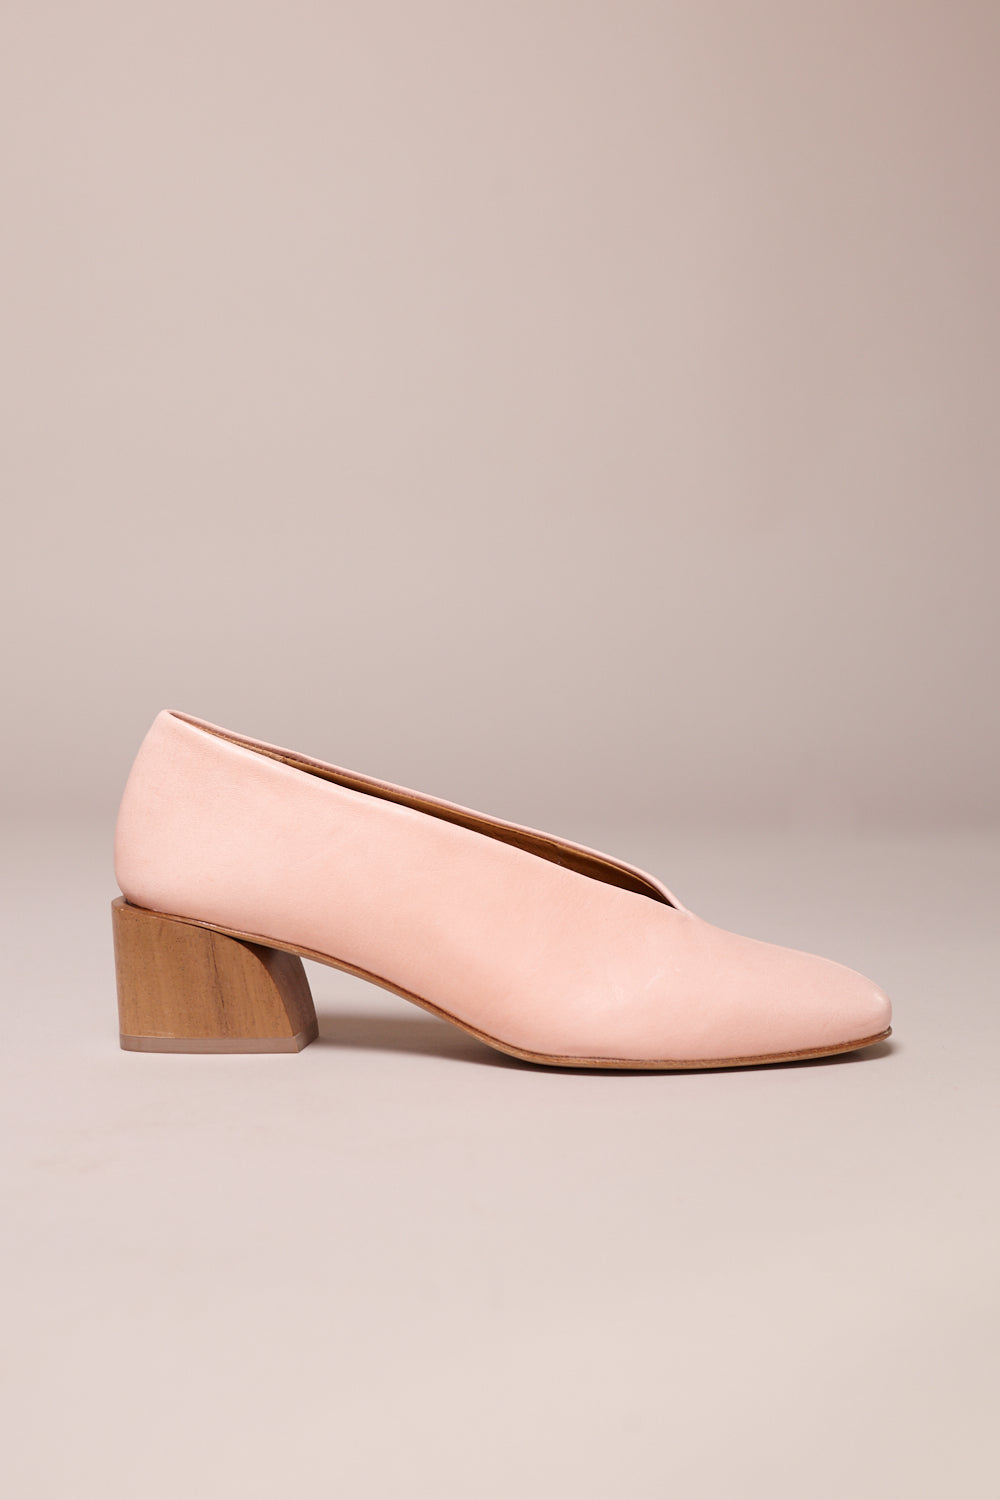 Coclico East Pump in Rock Hard Peach - Vert & Vogue